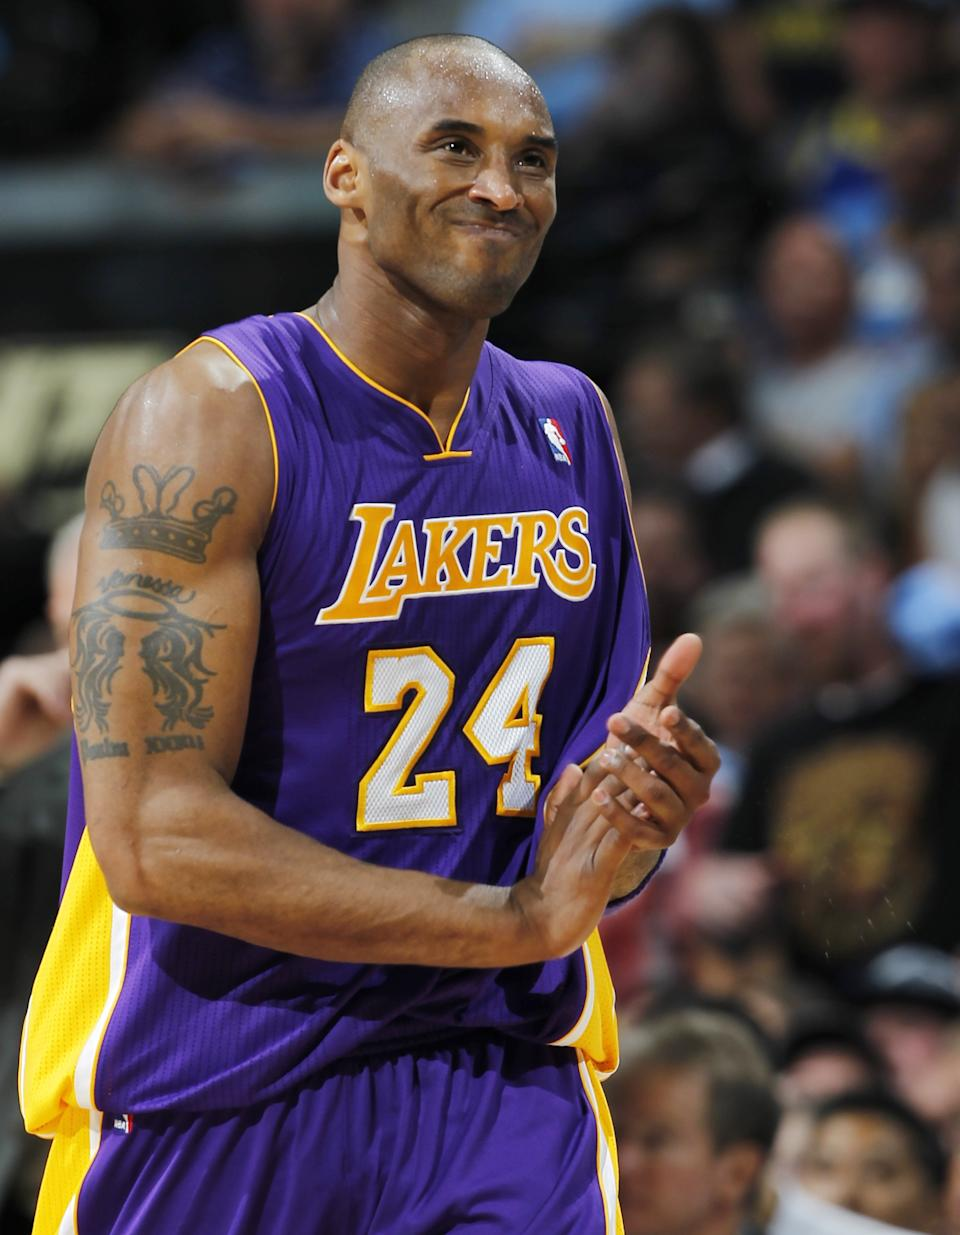 Los Angeles Lakers guard Kobe Bryant reacts after missing a shot against the Denver Nuggets in the fourth quarter of Game 3 of the Nuggets' 99-84 victory in the teams' first-round NBA playoff series in Denver on Friday, May 4, 2012. (AP Photo/David Zalubowski)